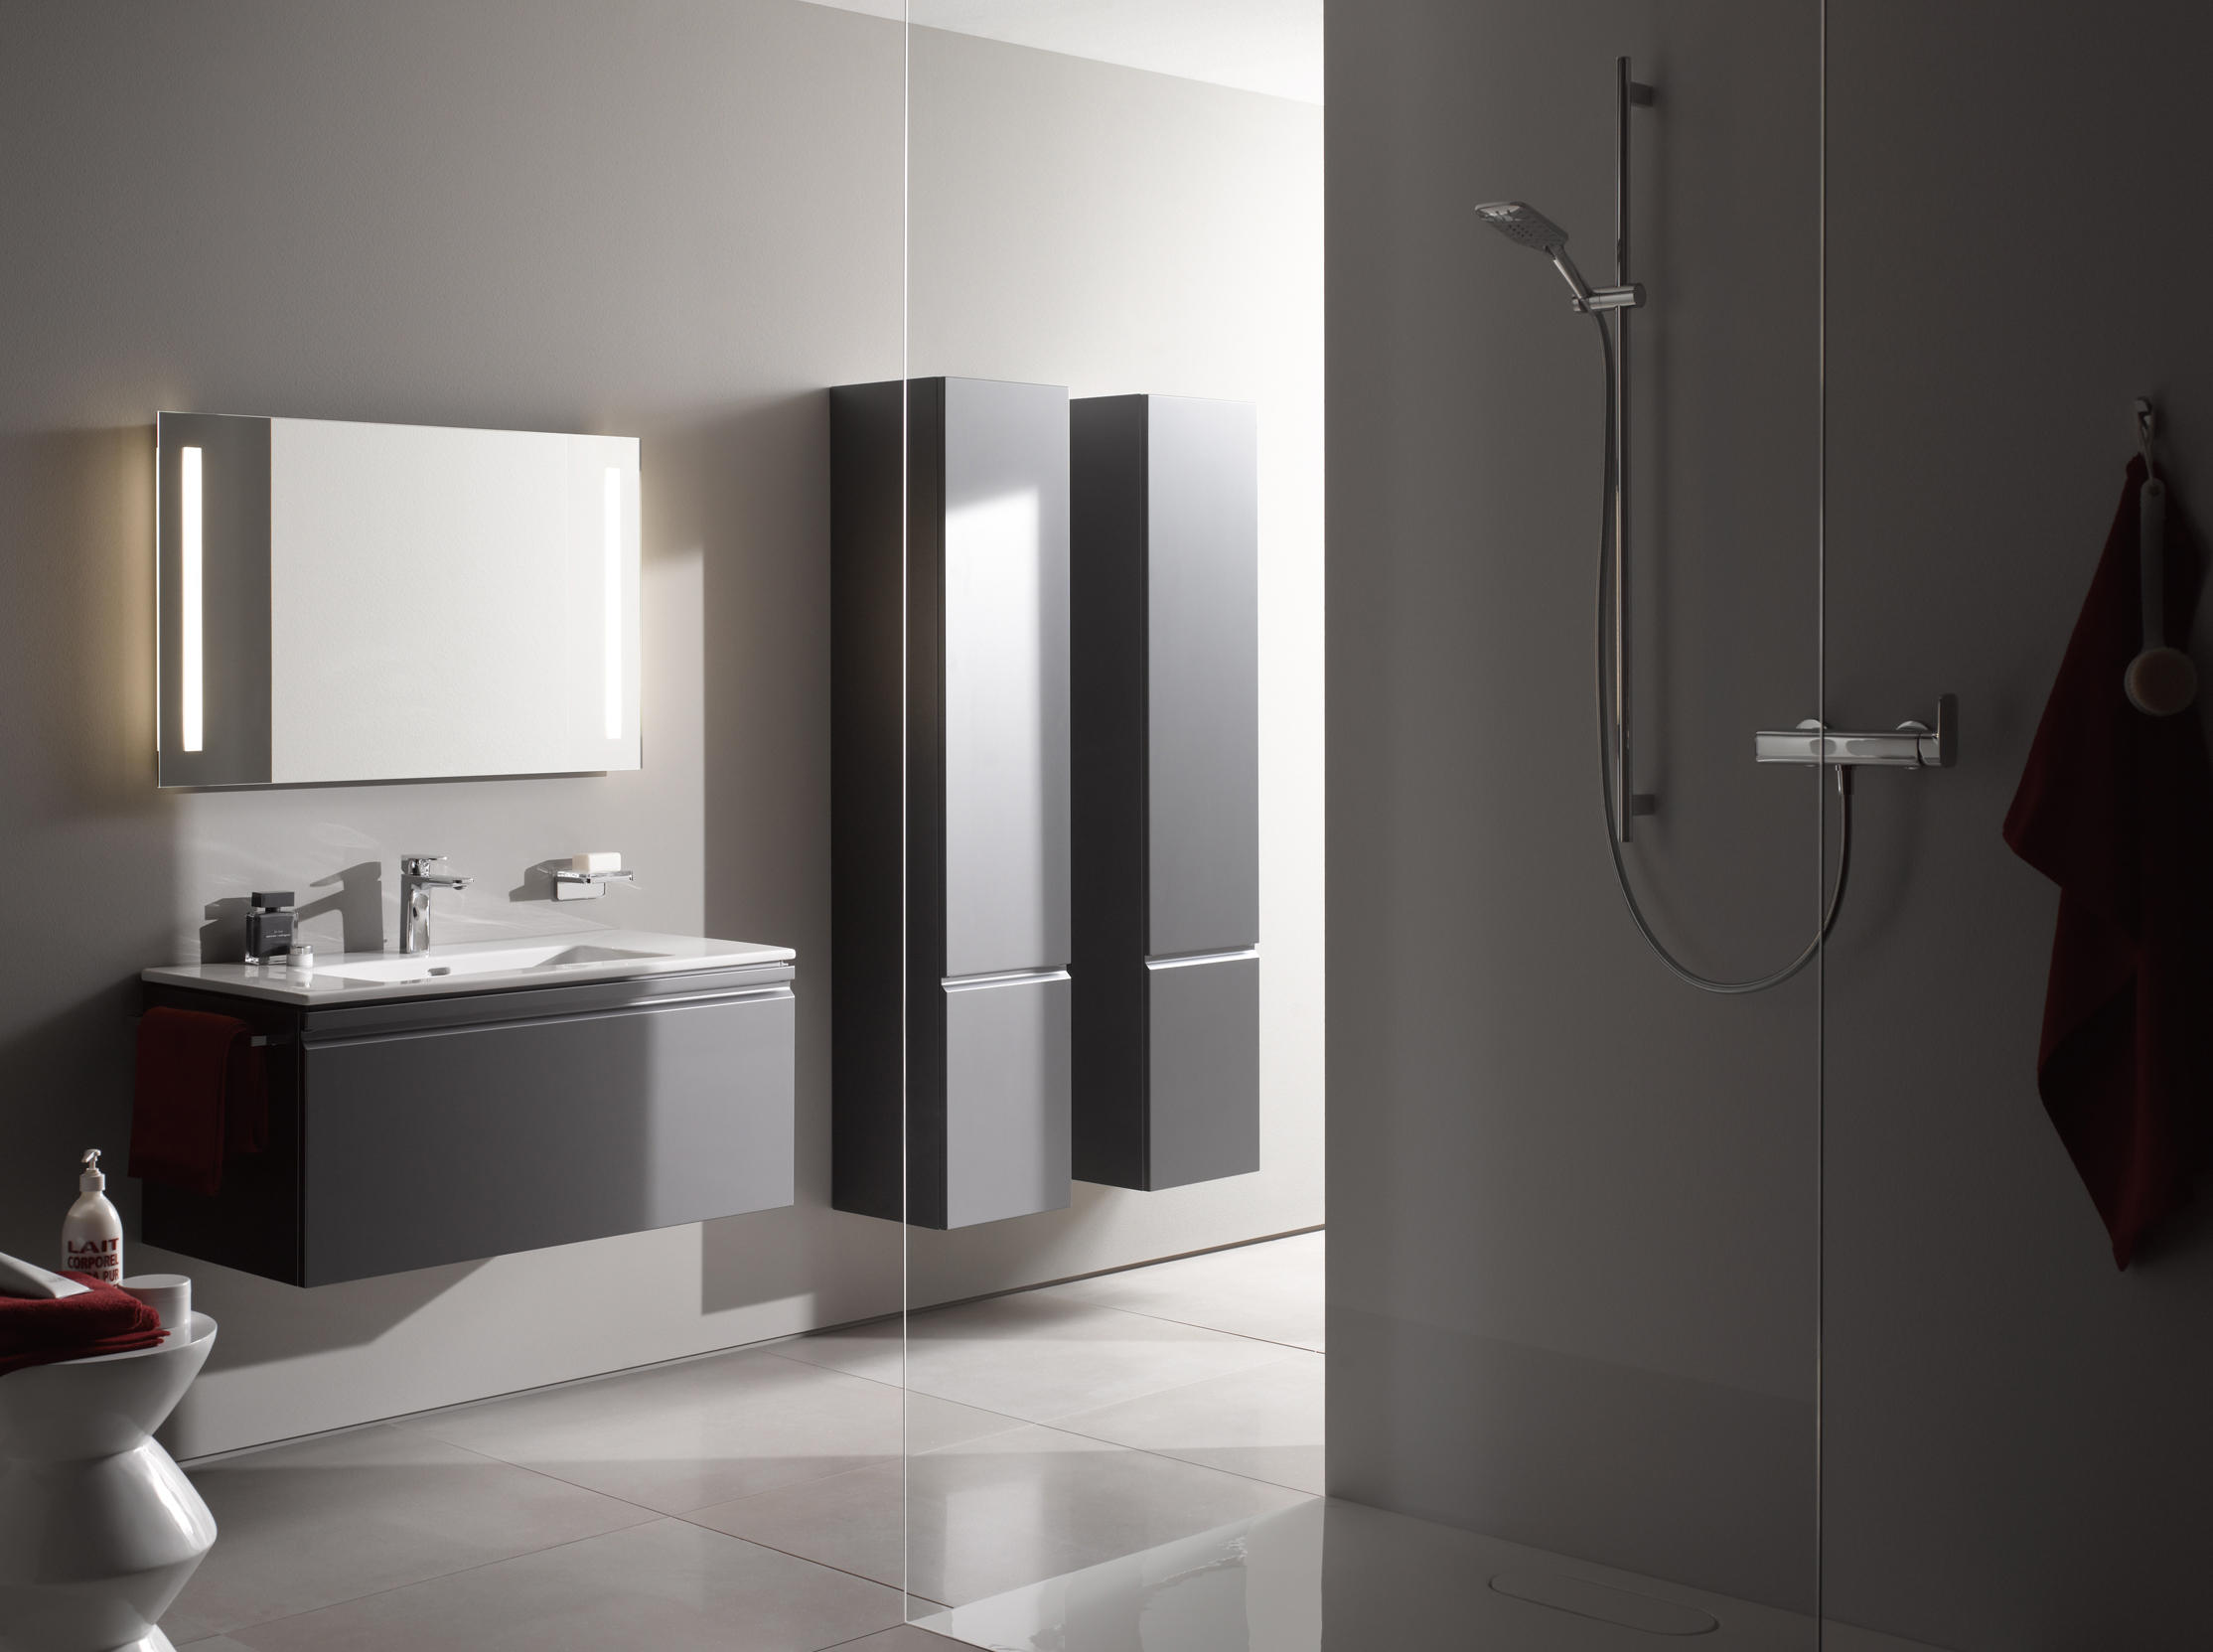 laufen pro s meuble sous lavabo meubles sous lavabo de laufen architonic. Black Bedroom Furniture Sets. Home Design Ideas